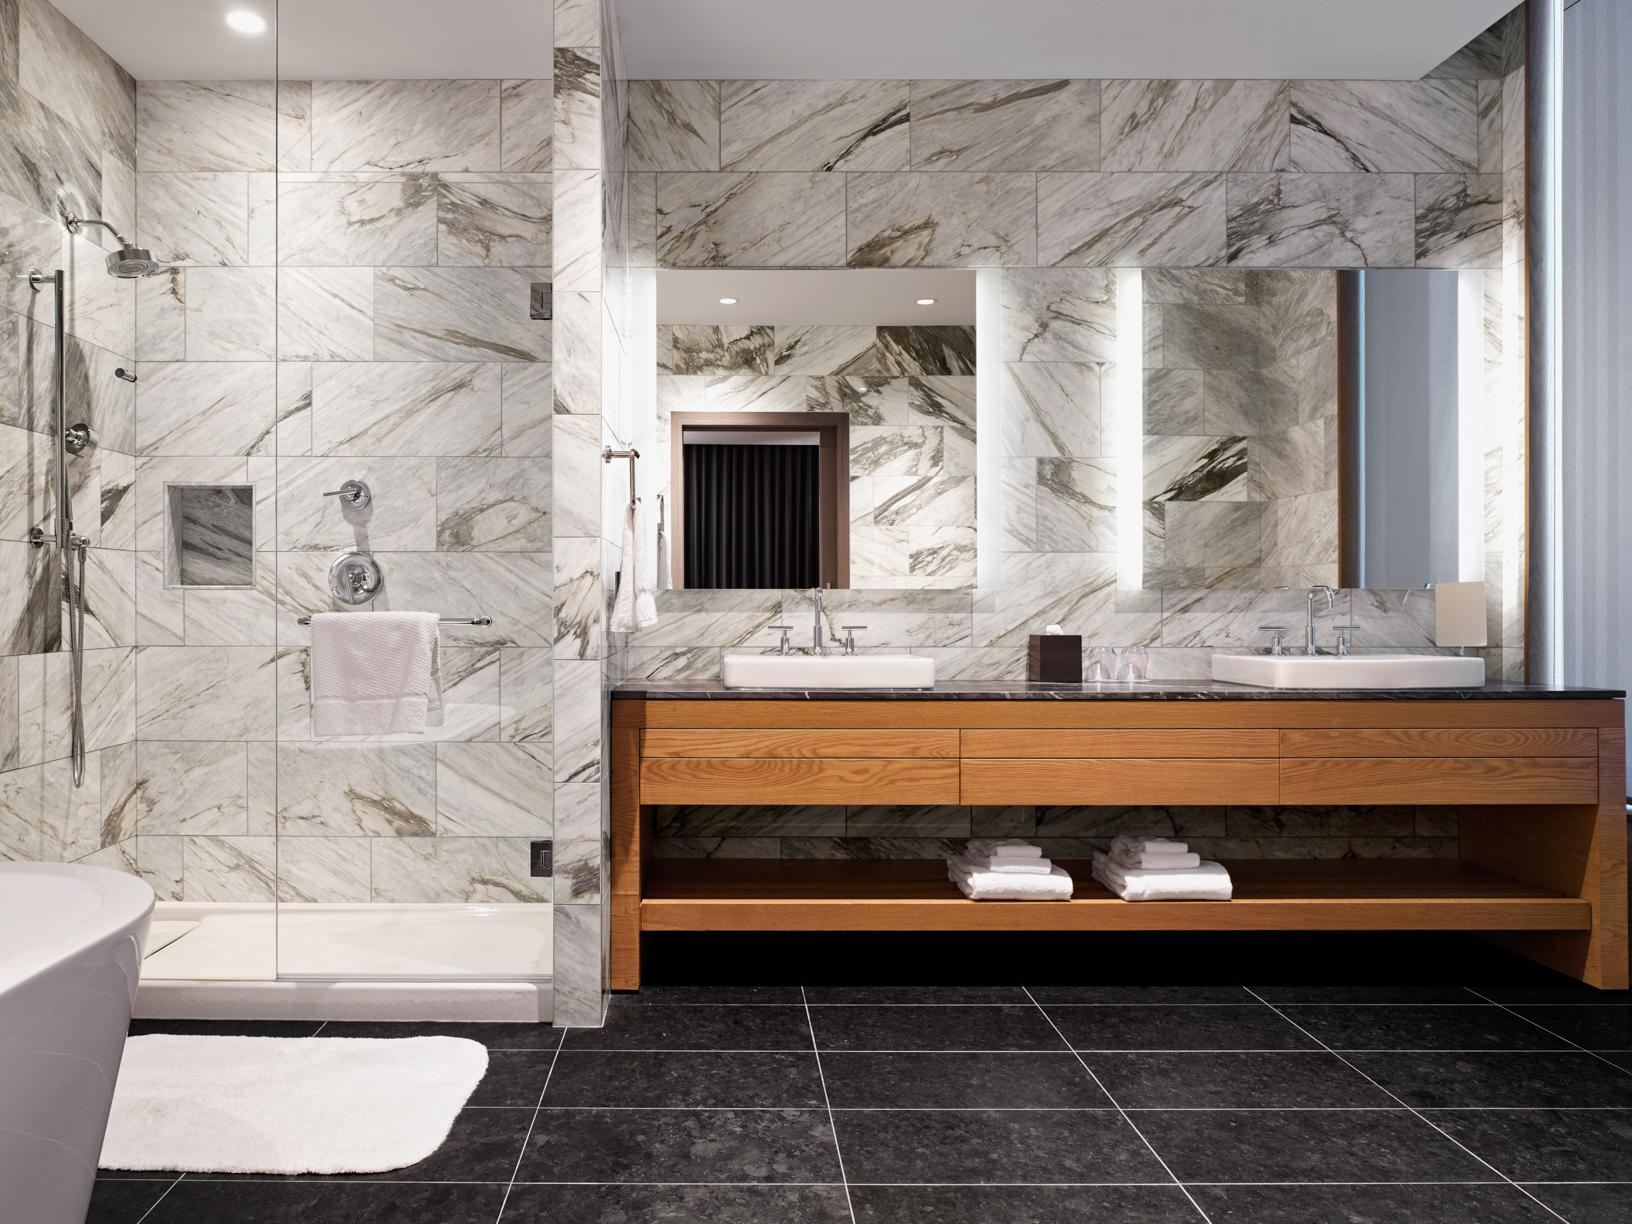 bathroom with his and hers vanity, white marble shower and black floor tiles